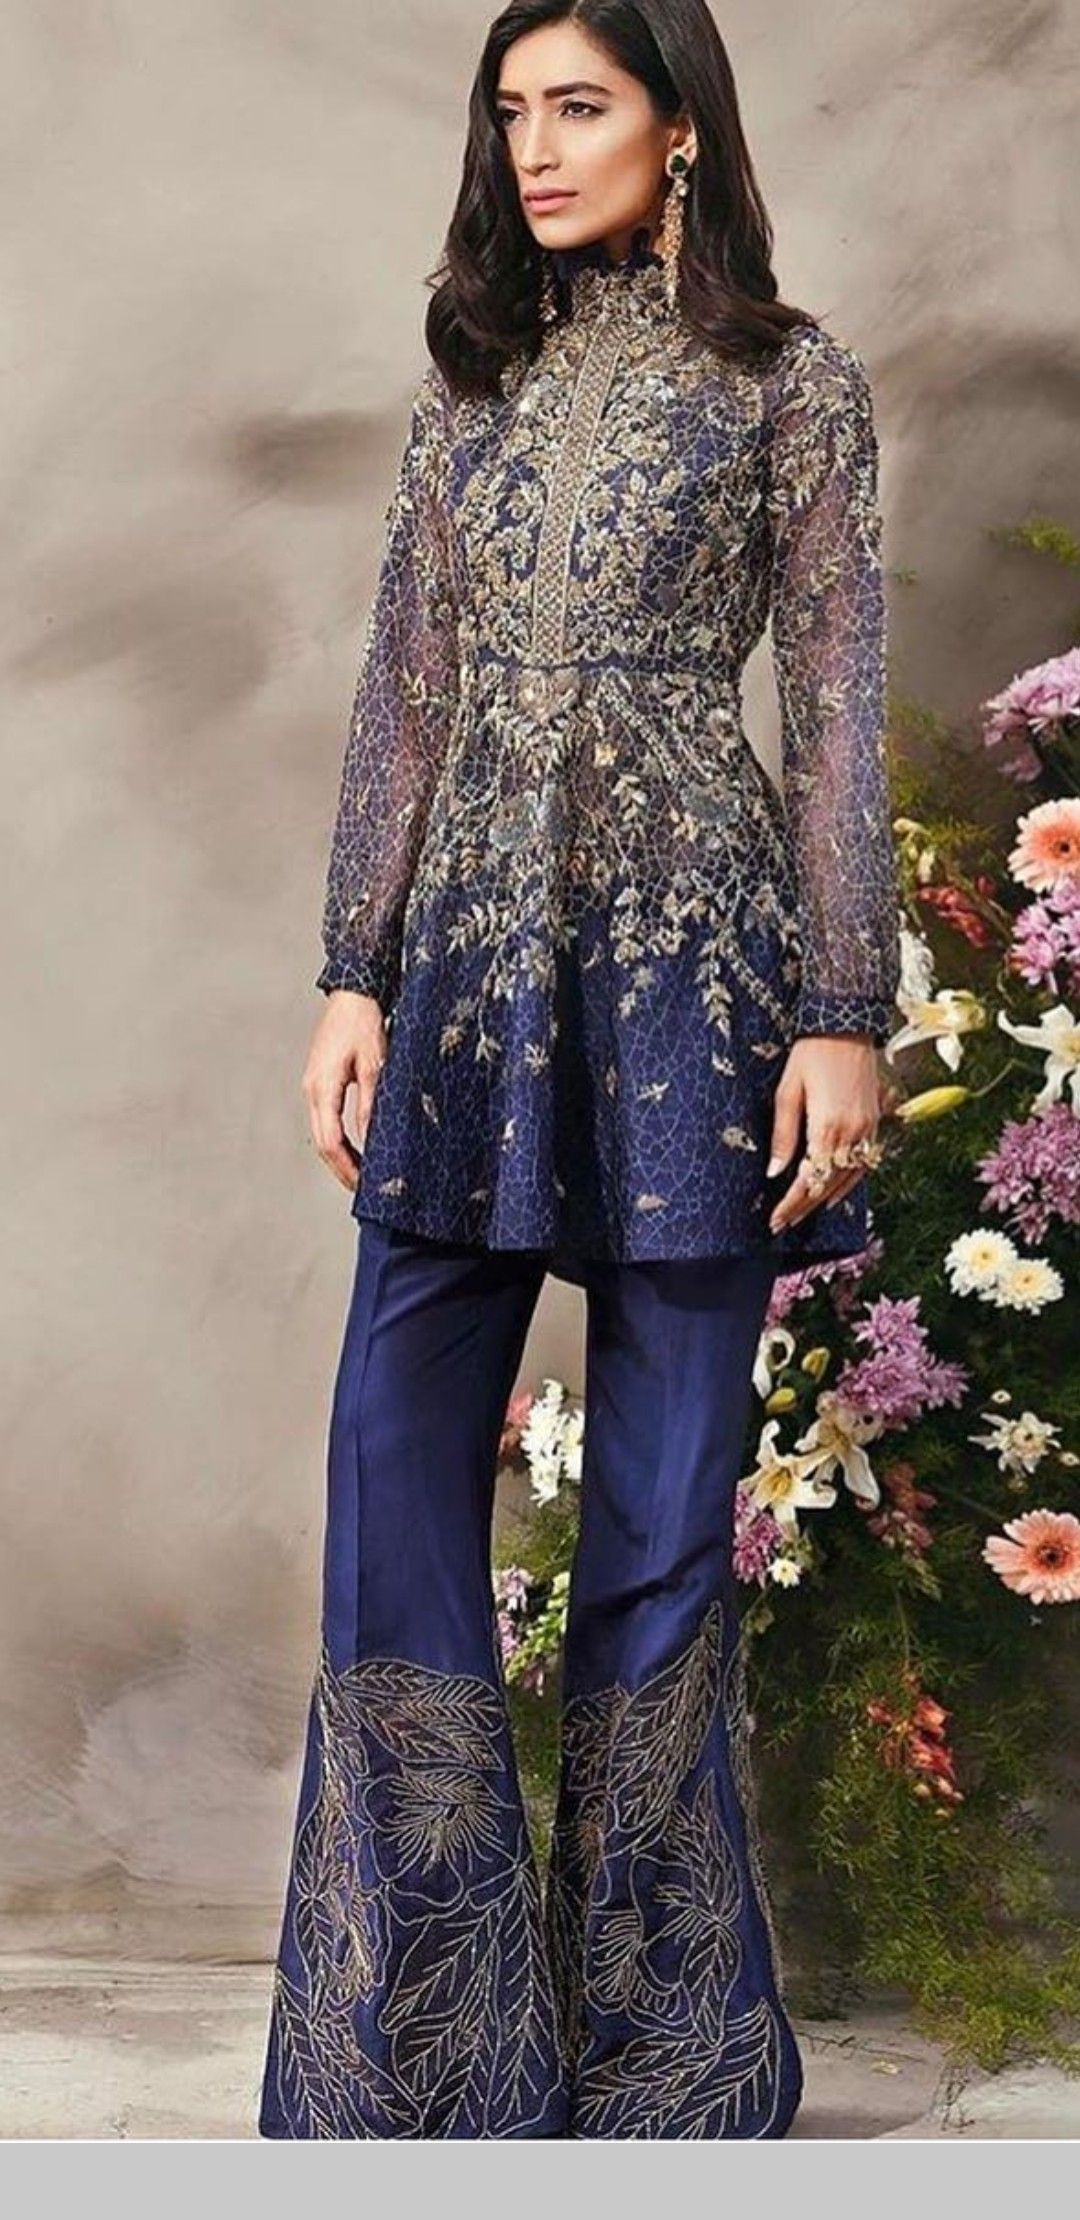 441097a75c Punjabi Fashion, Ethnic Fashion, Indian Fashion, Plazzo Pants Outfit,  Bridal Dresses 2018